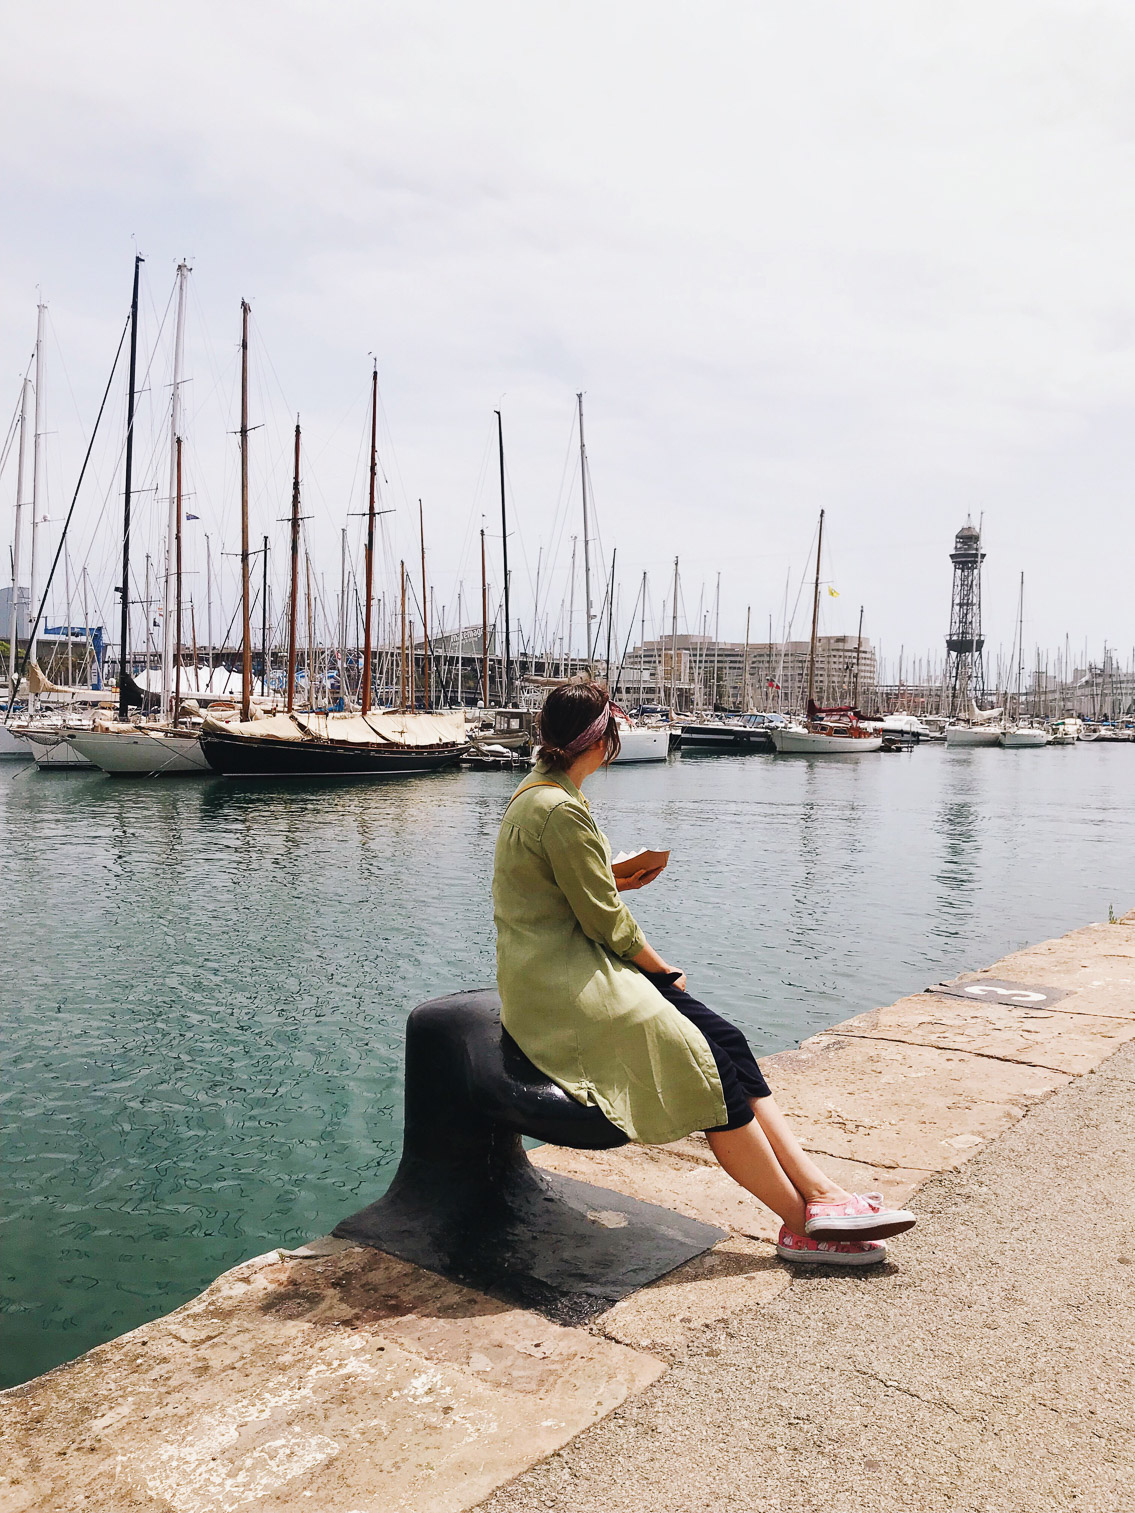 Barcelona port - The cat, you and us